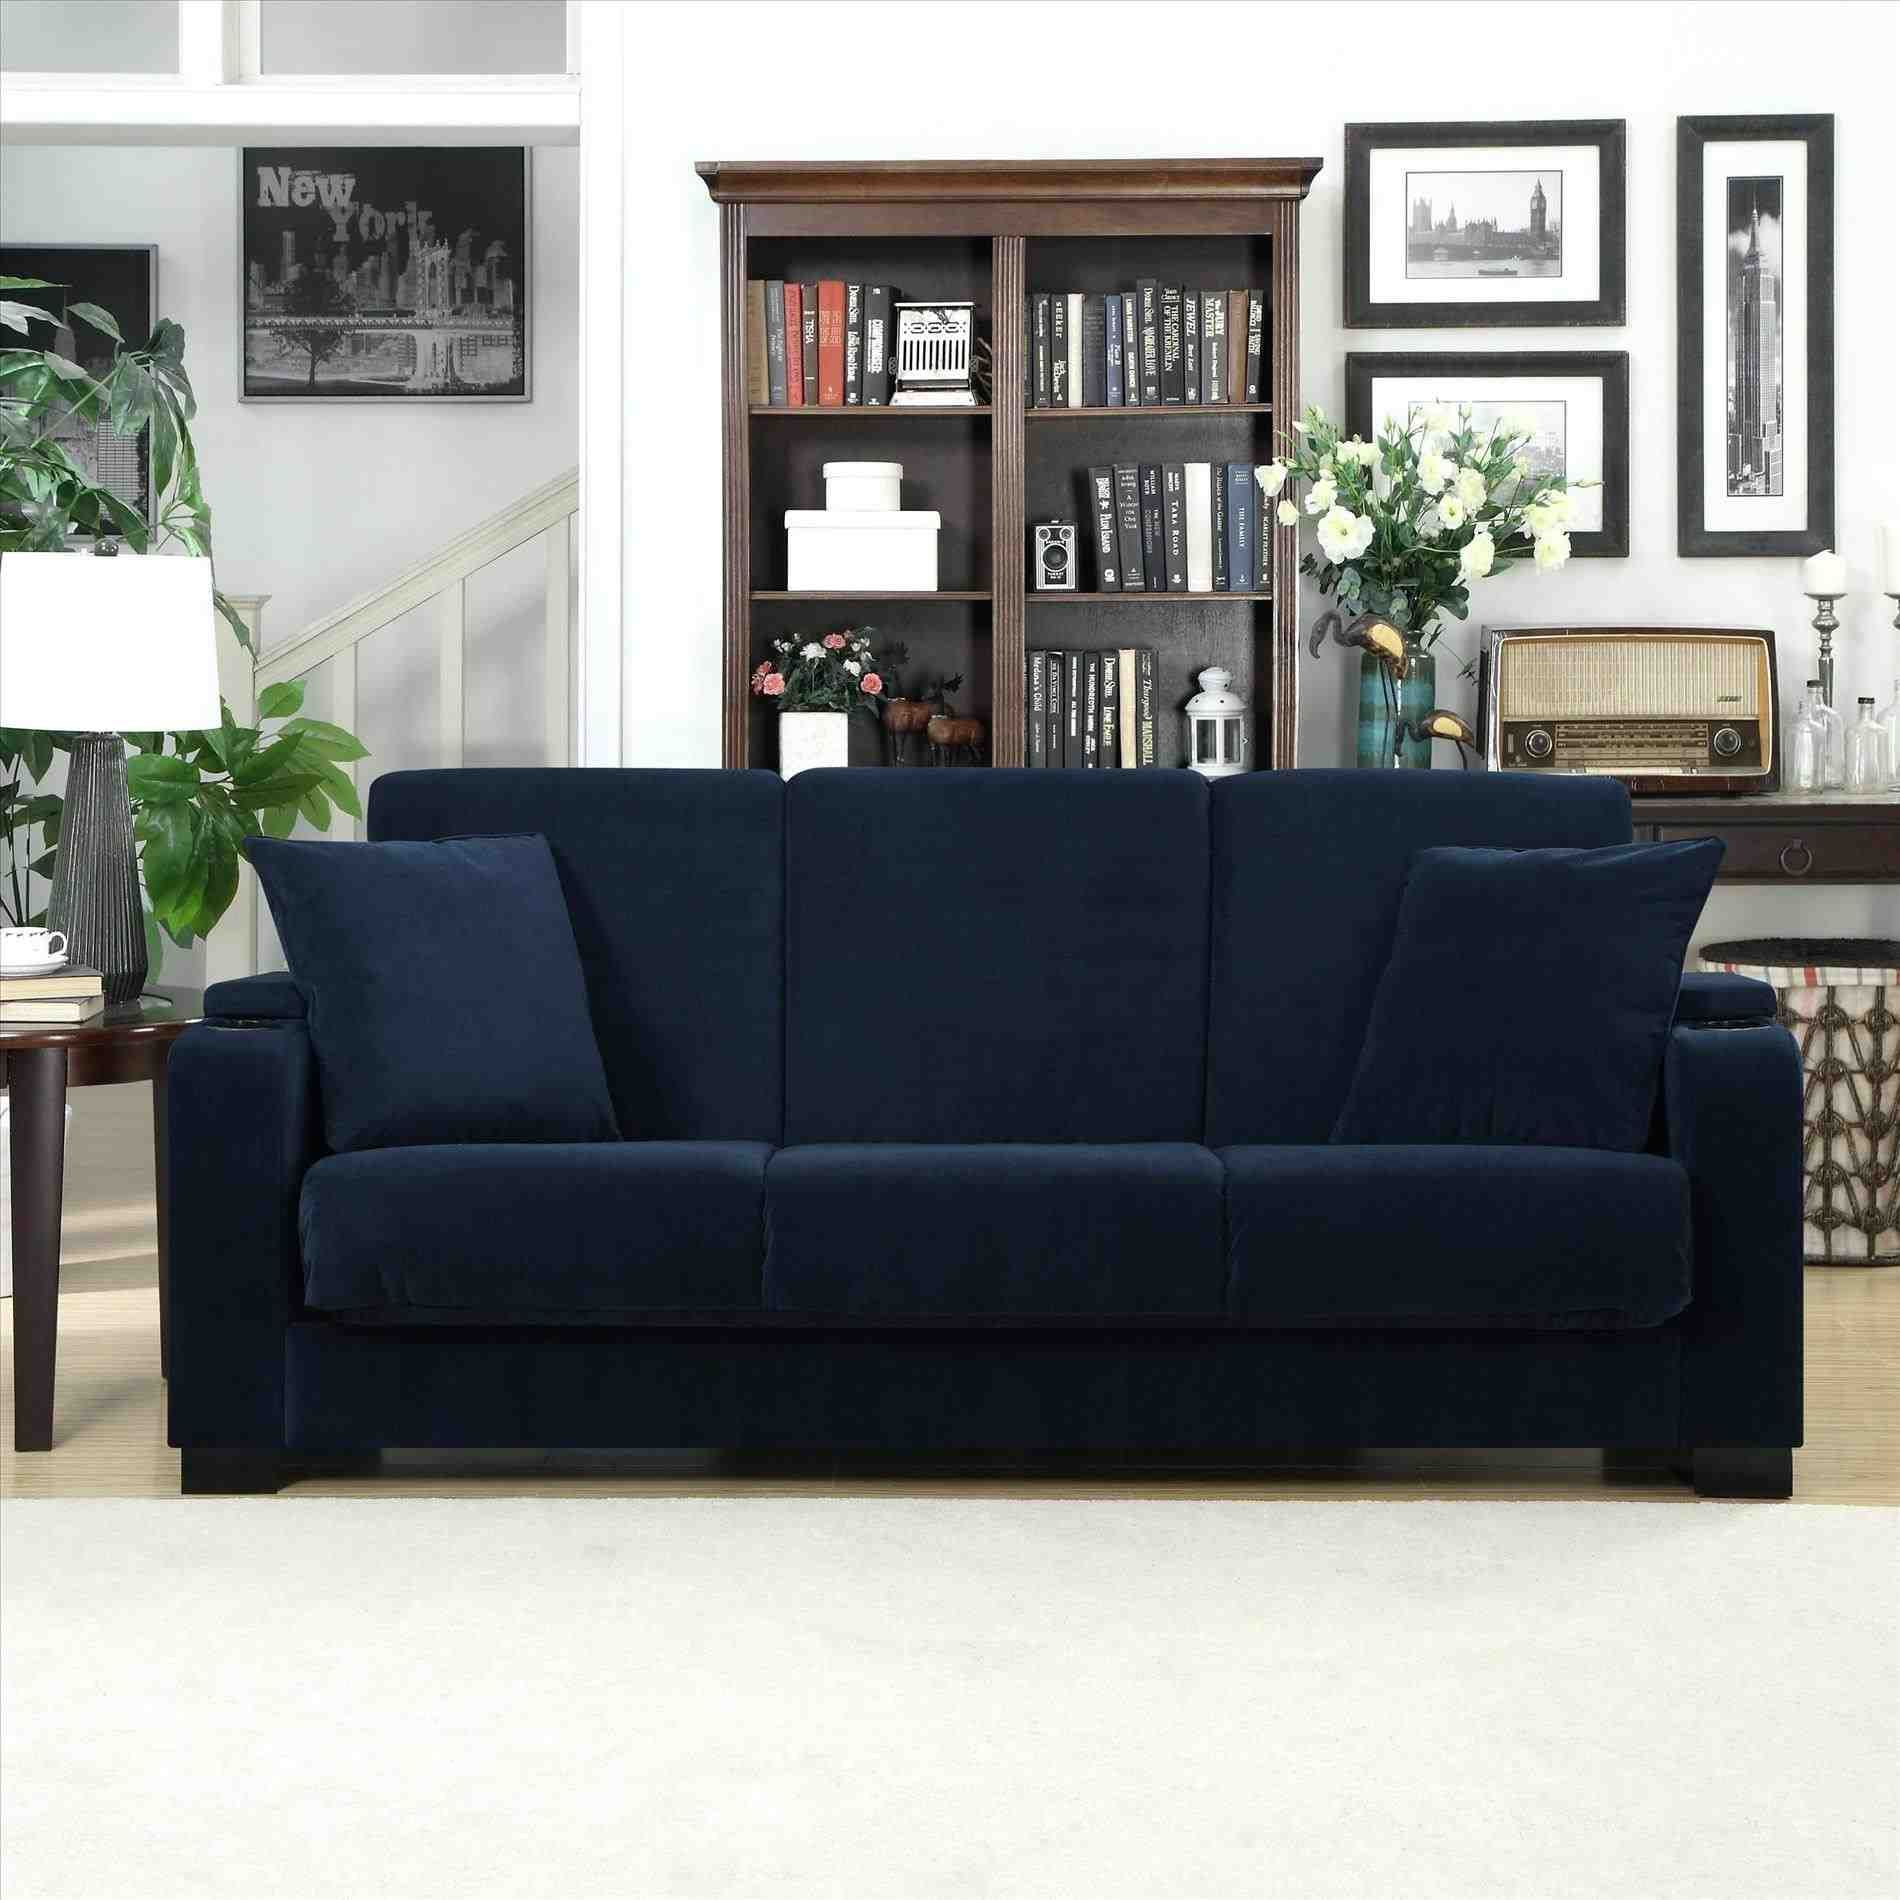 Cheap Sofa Deals Uk - living room chairs cheap furniture prices in nigeria  uk only sale. full size of sofa:pull out couch cheap corner sofas corner  sofa bed